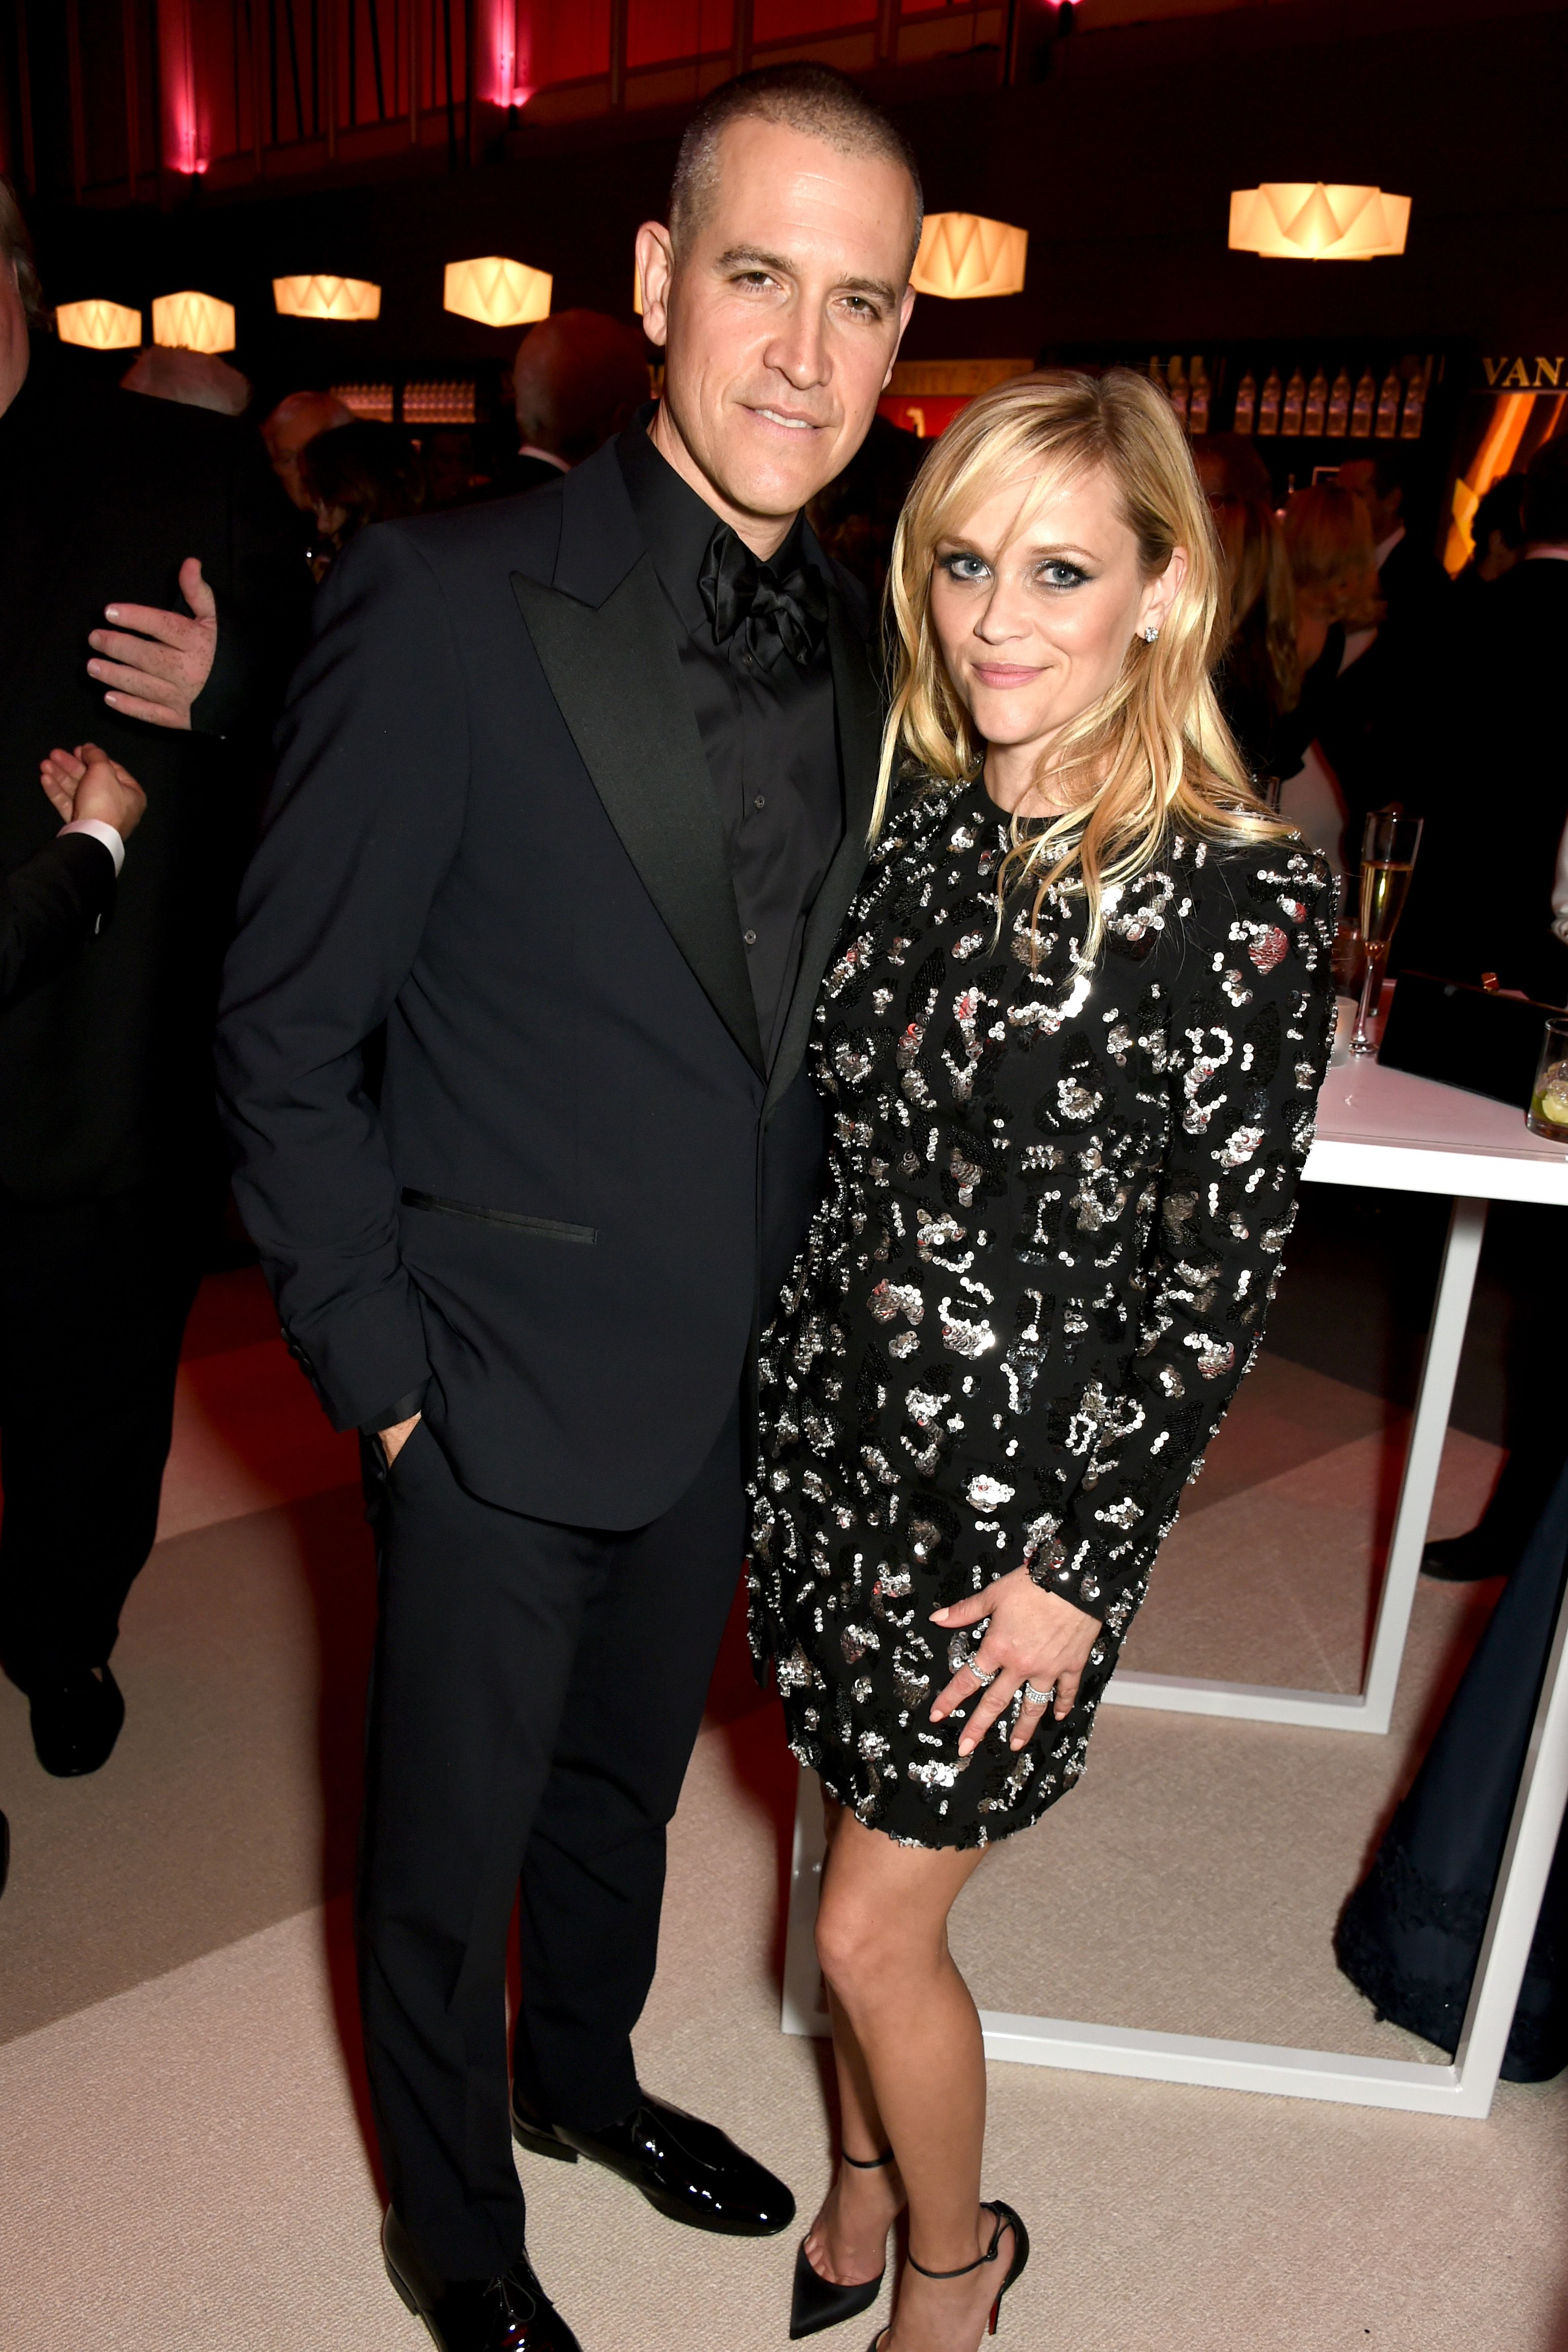 Reese Witherspoon and Jim Toth met when he rescued her from his drunk friend.